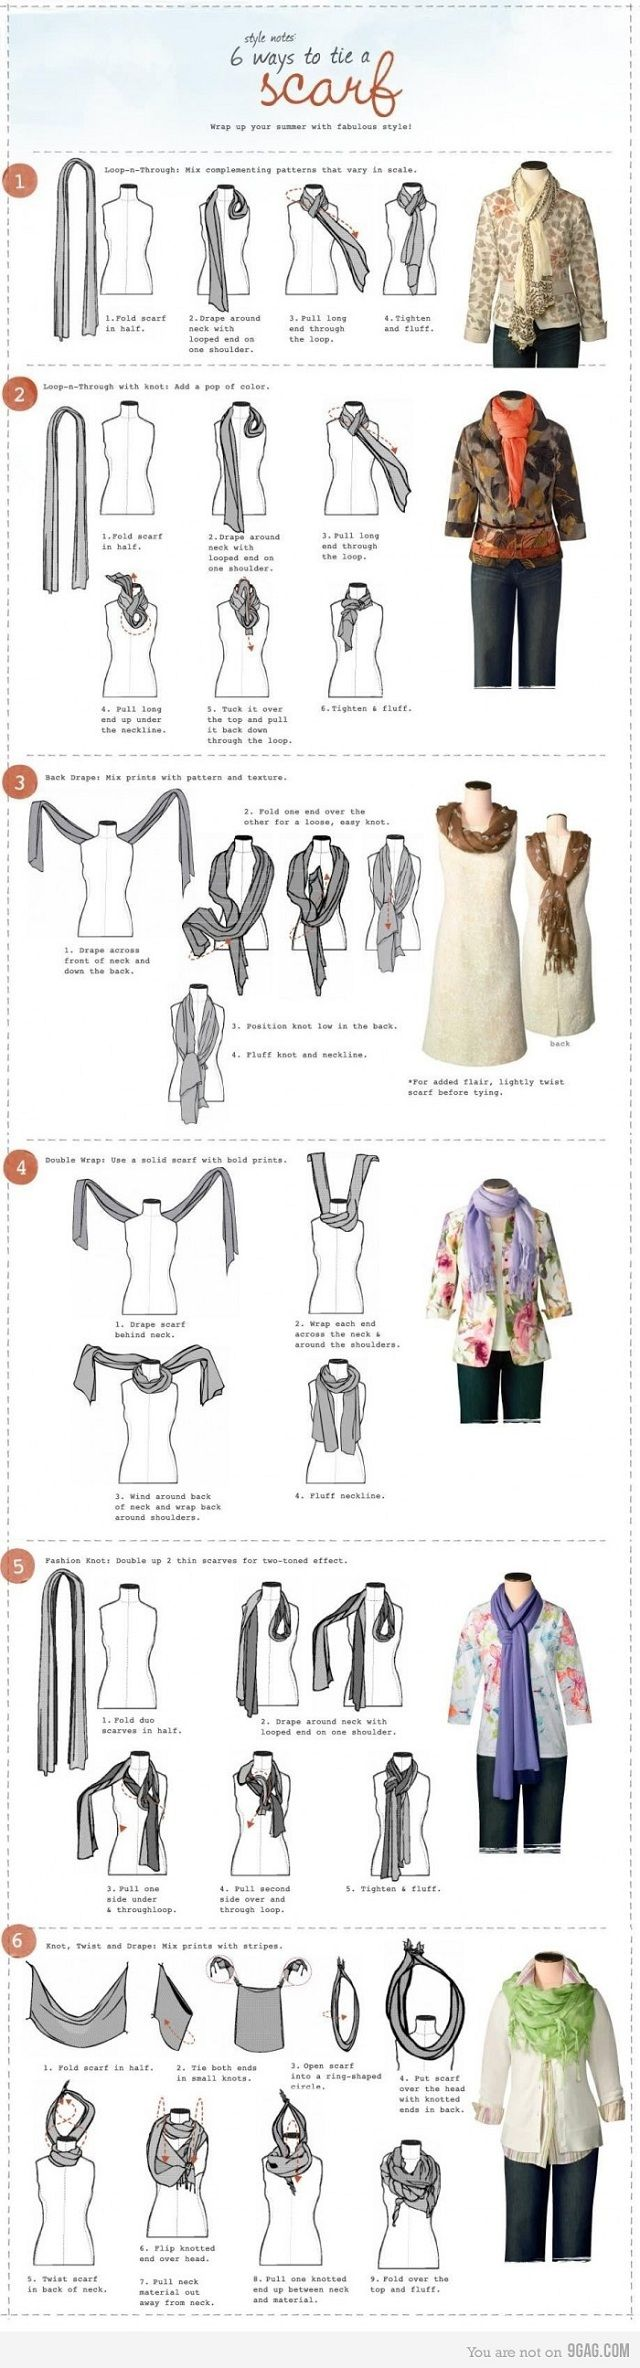 loveTies Scarves, Scarf Ideas, Scarf Ties, Scarf Tutorials, Wear Scarf, Ties Scarf, Wear A Scarf, Ties A Scarf, Scarf Styles